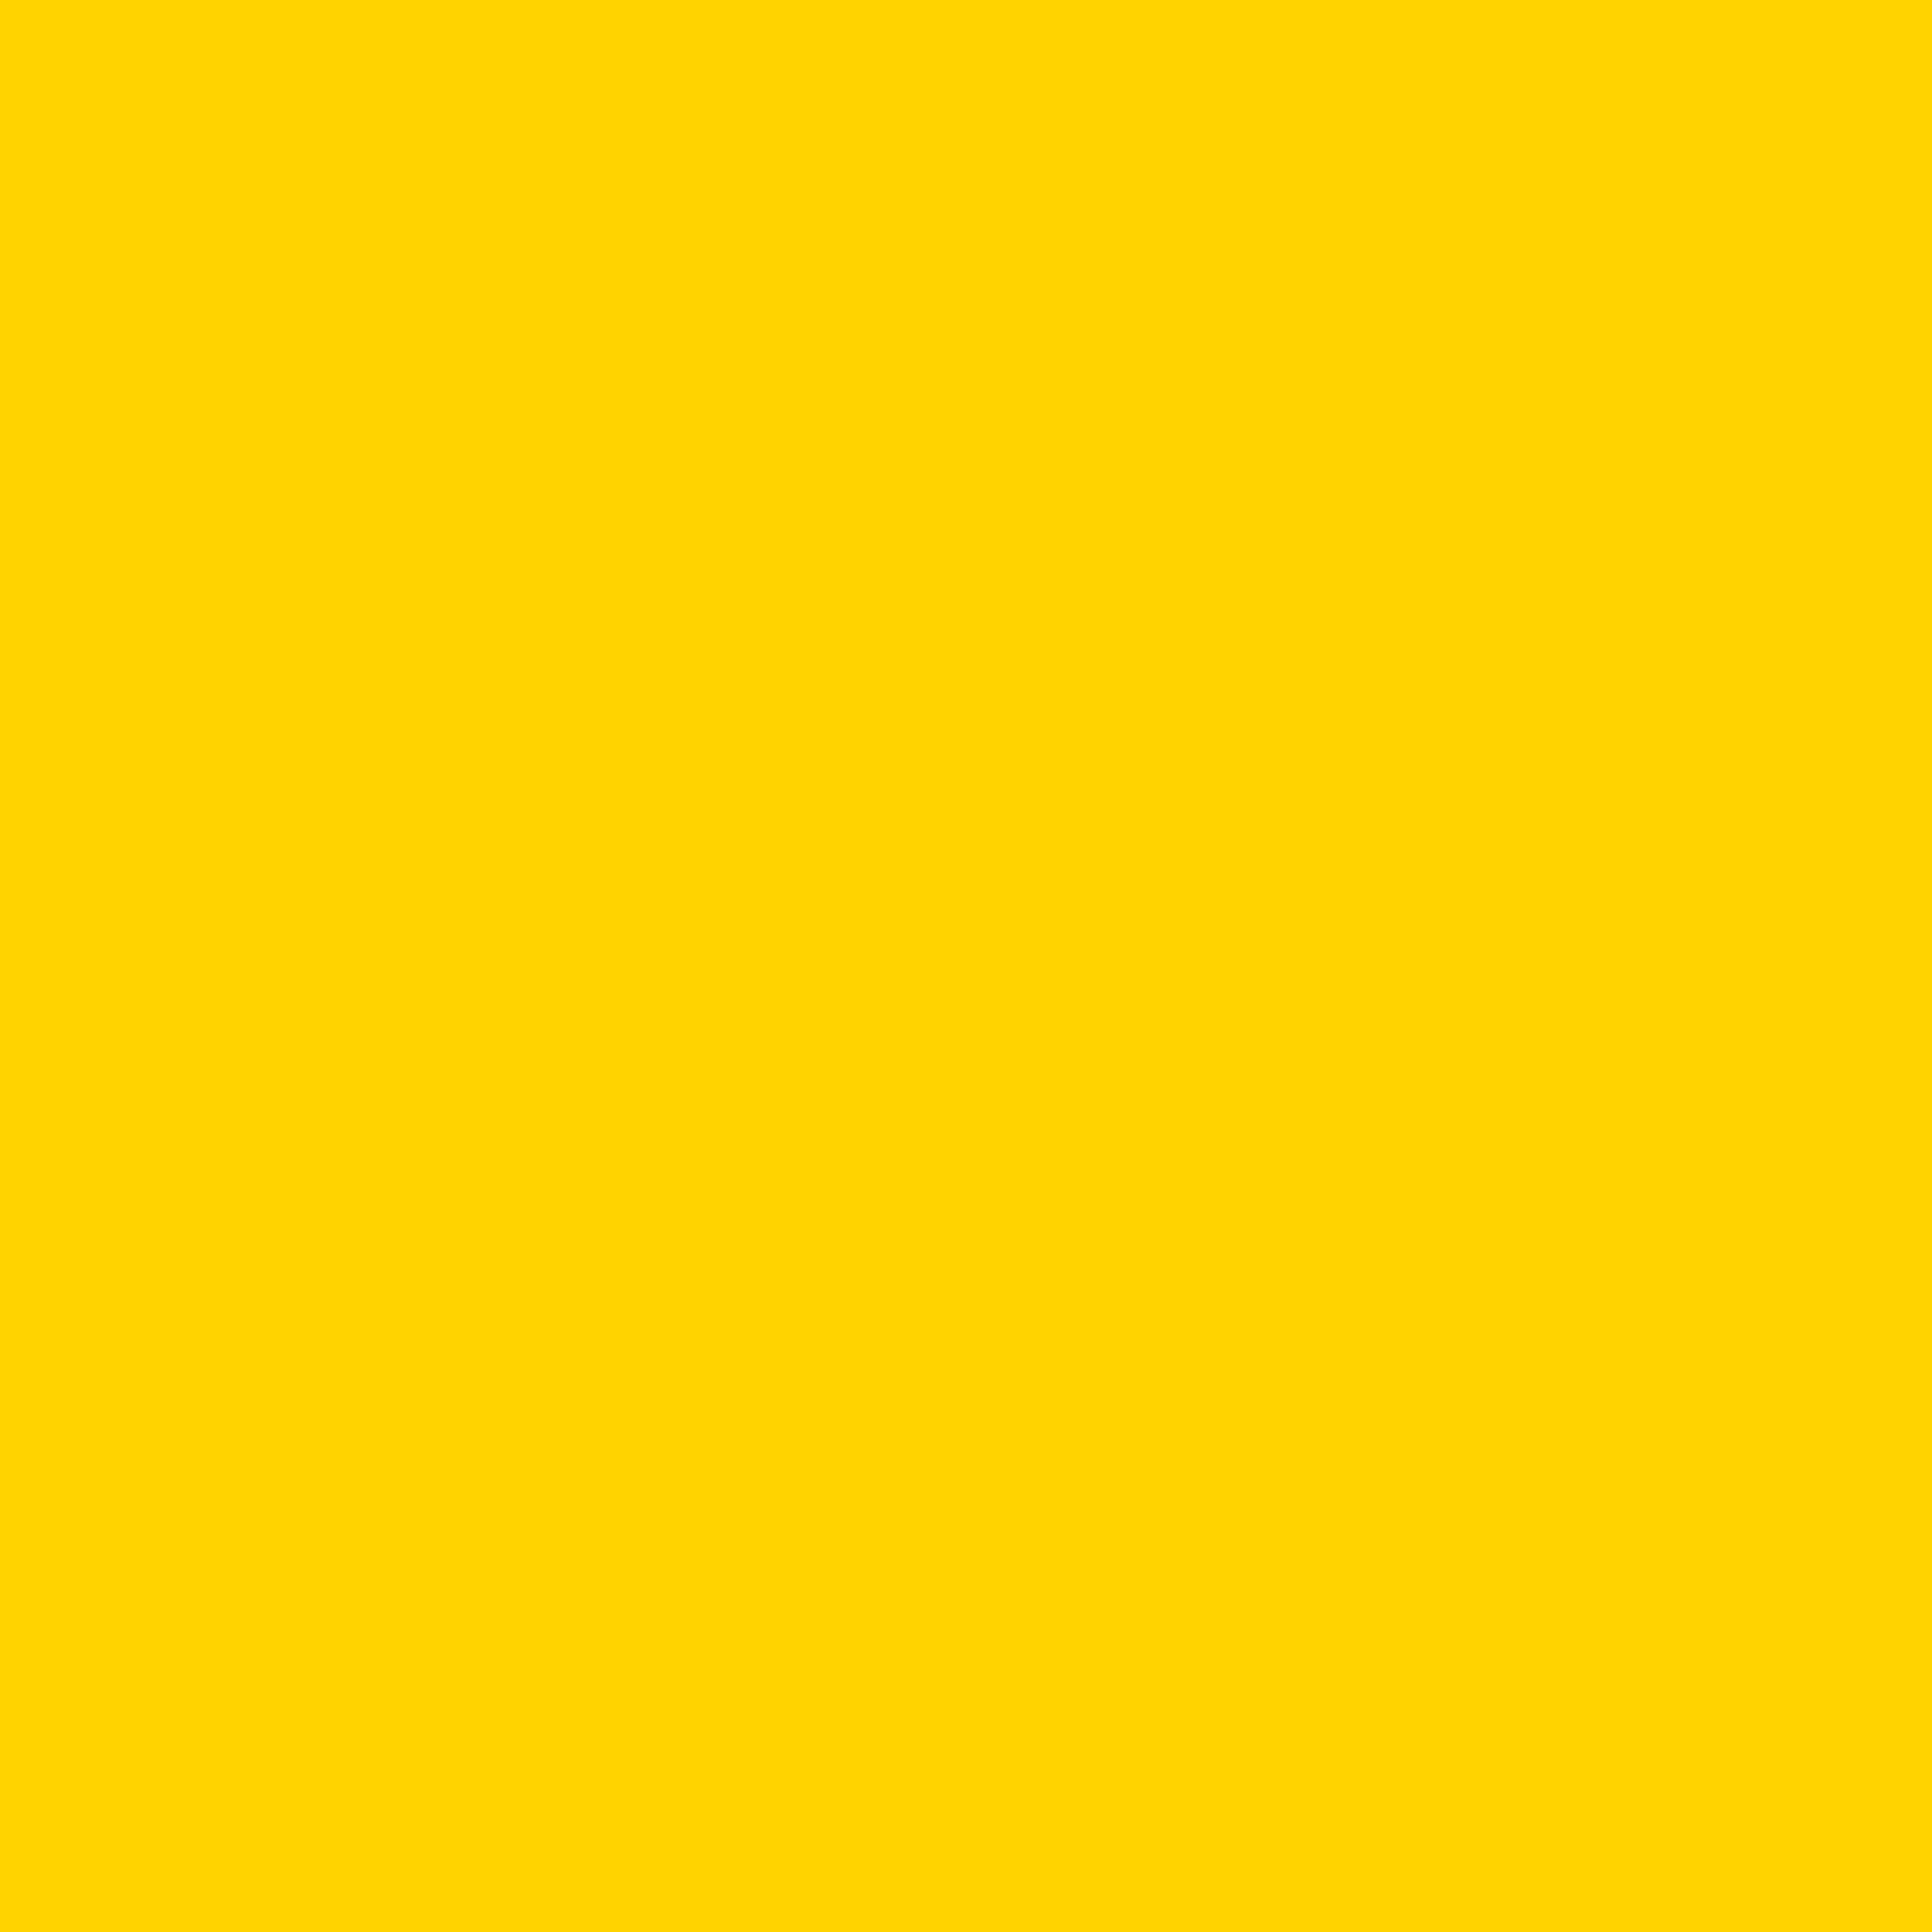 2048x2048 Cyber Yellow Solid Color Background